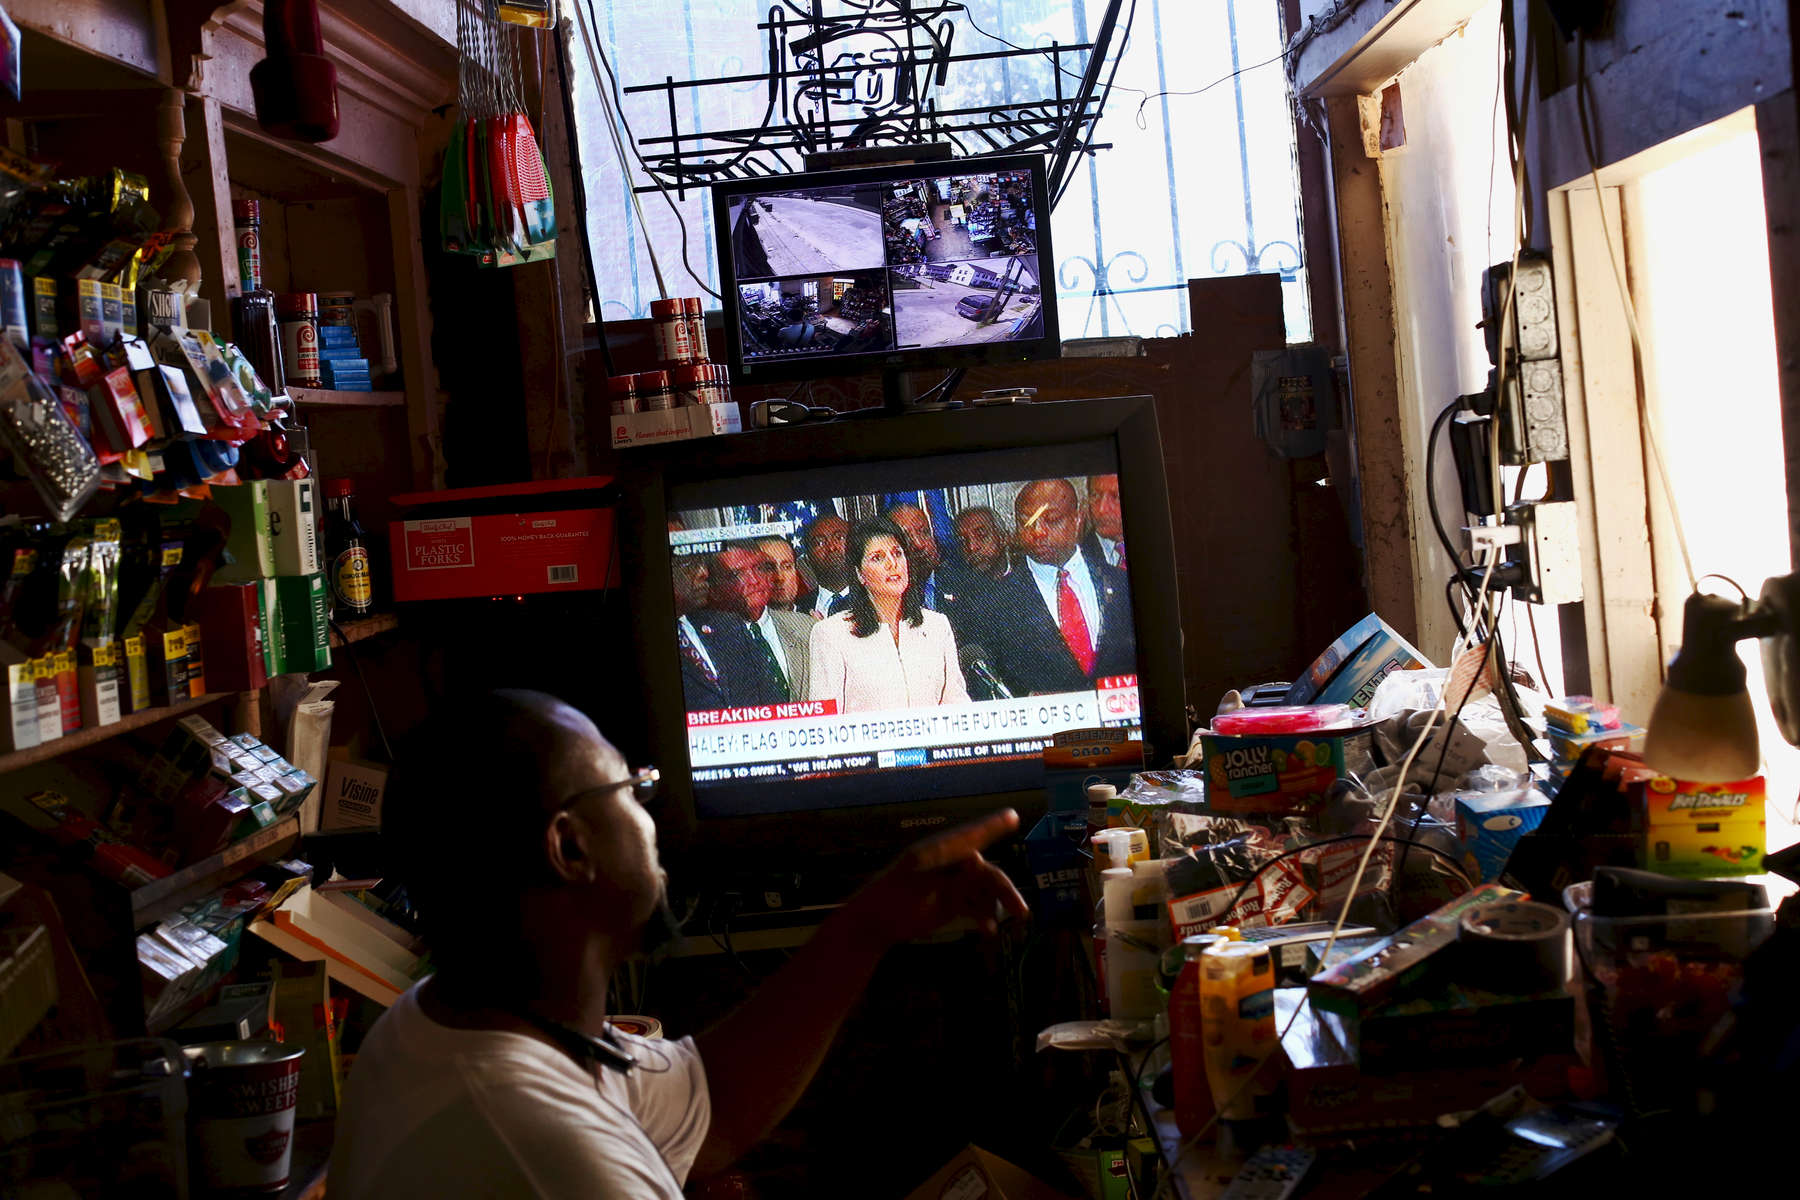 NAT *** Charleston, SC -- 06/22/2015 - A store owner watches Governor Nikki Haley speak about the Confederate flag on television on Monday in Charleston, SC.(Travis Dove for The New York Times)